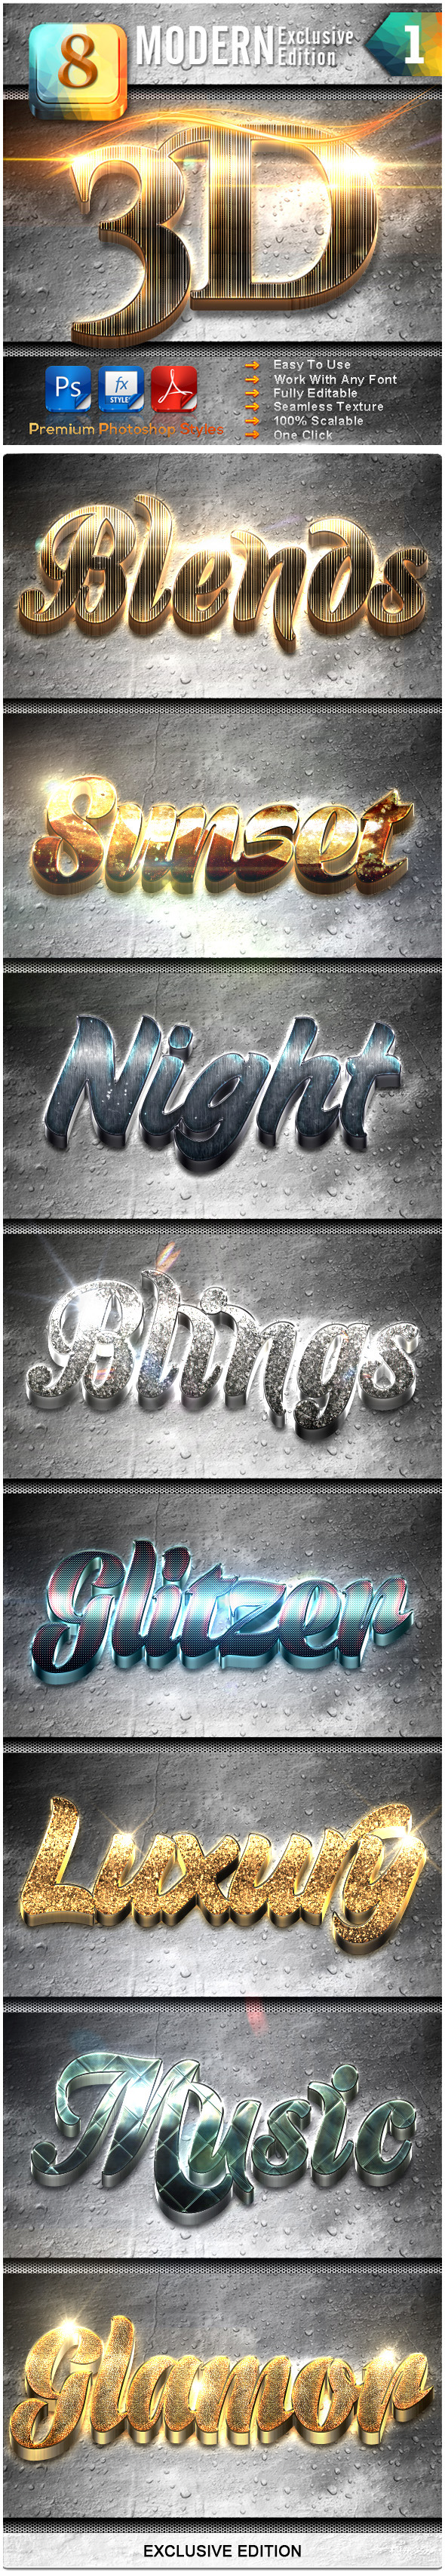 8 Modern 3D Exclusive Edition Vol.1 - Text Effects Styles